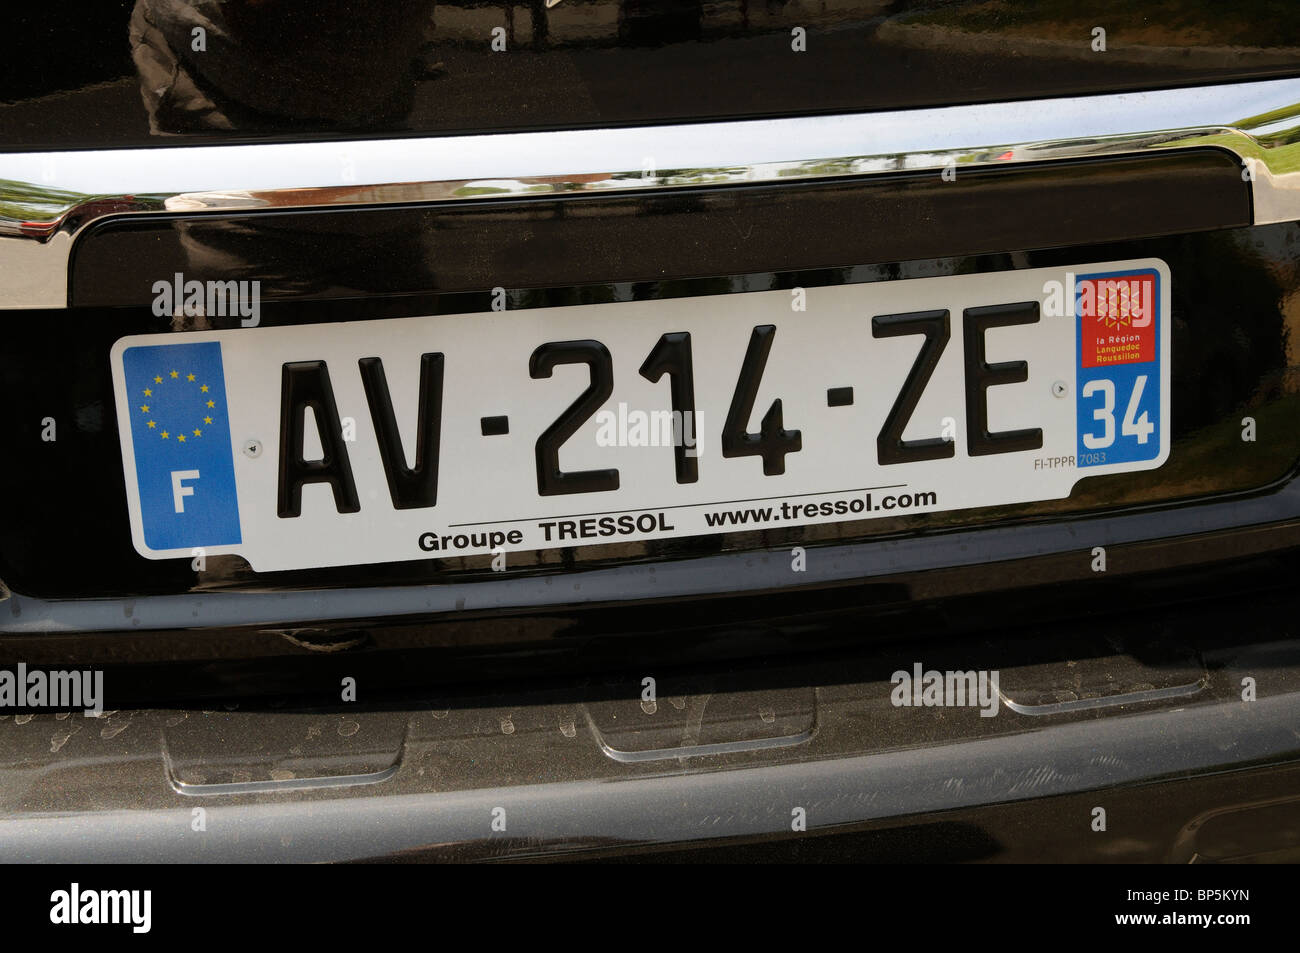 French Car Number Plate Issued In The Languedoc Roussillon Region